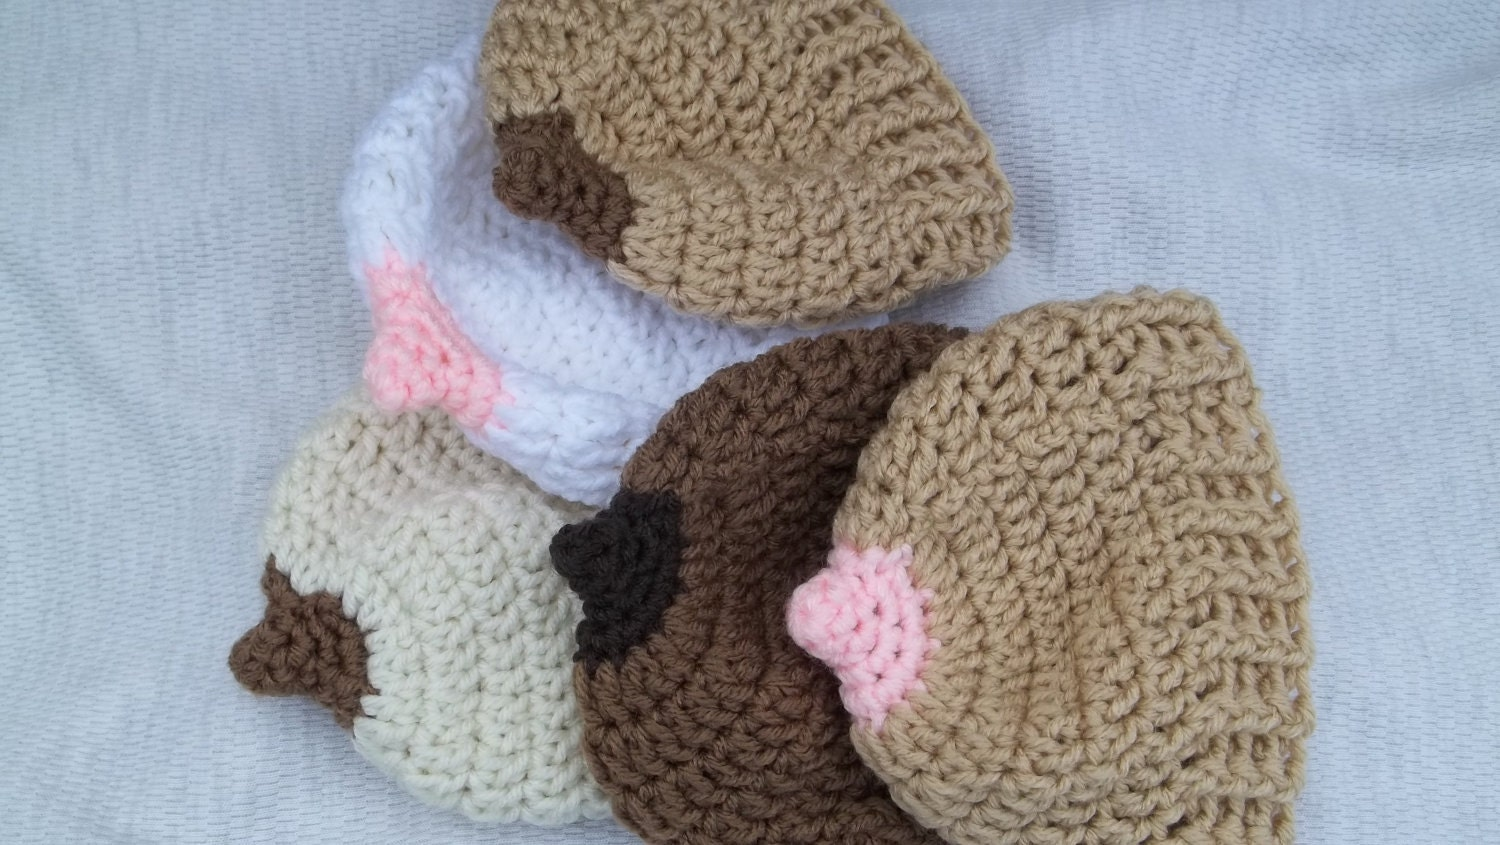 Breast Cancer Awareness Month... Boobie hat for breastfeeding moms and breast cancer awareness - sunshineknitandsew